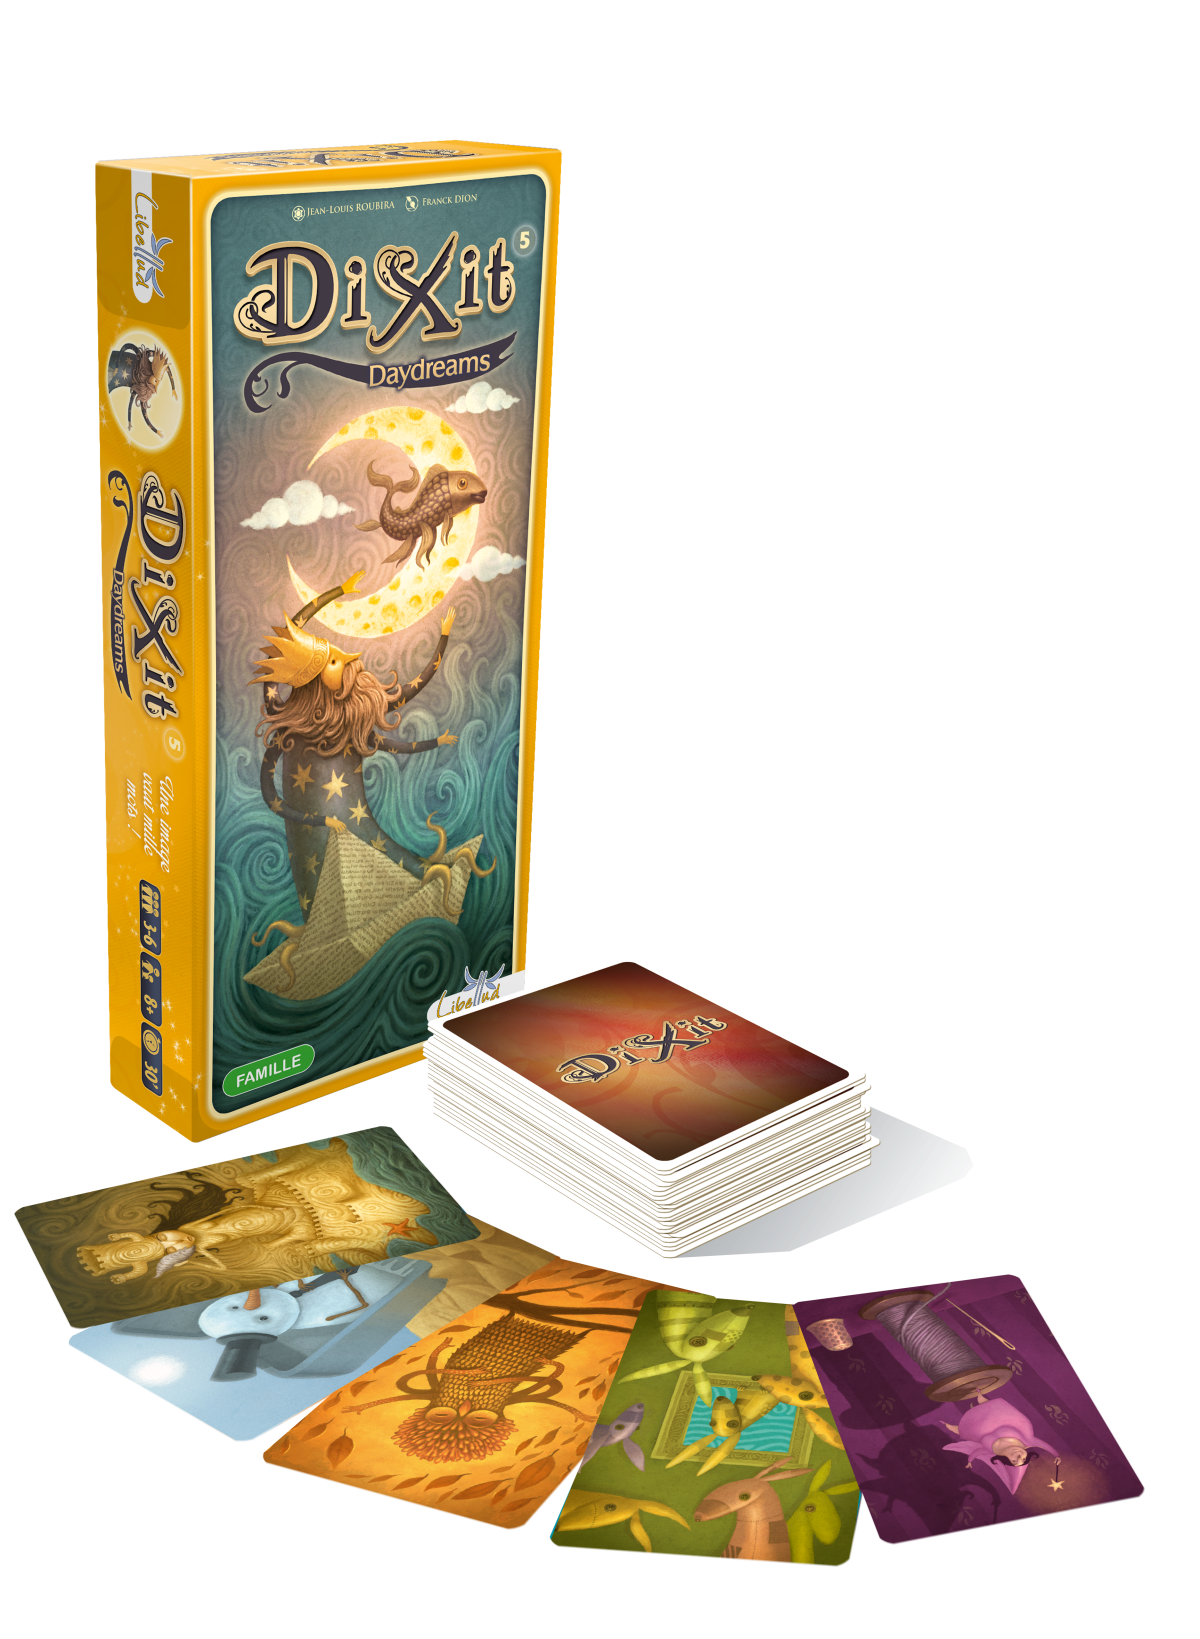 DIXIT_DAYDREAMS_FR_BOXECLATE2